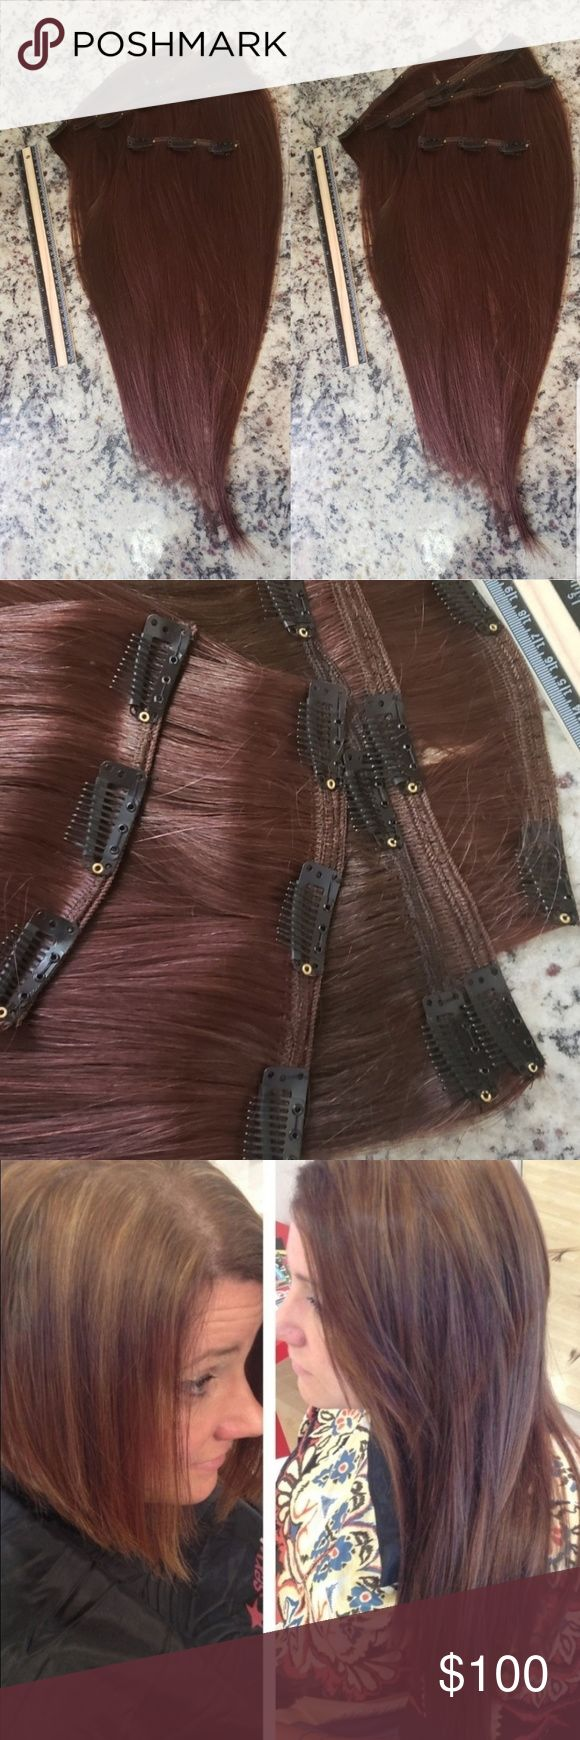 5 pcs Double Wefted 🌟 Clip in Hair Extensions …